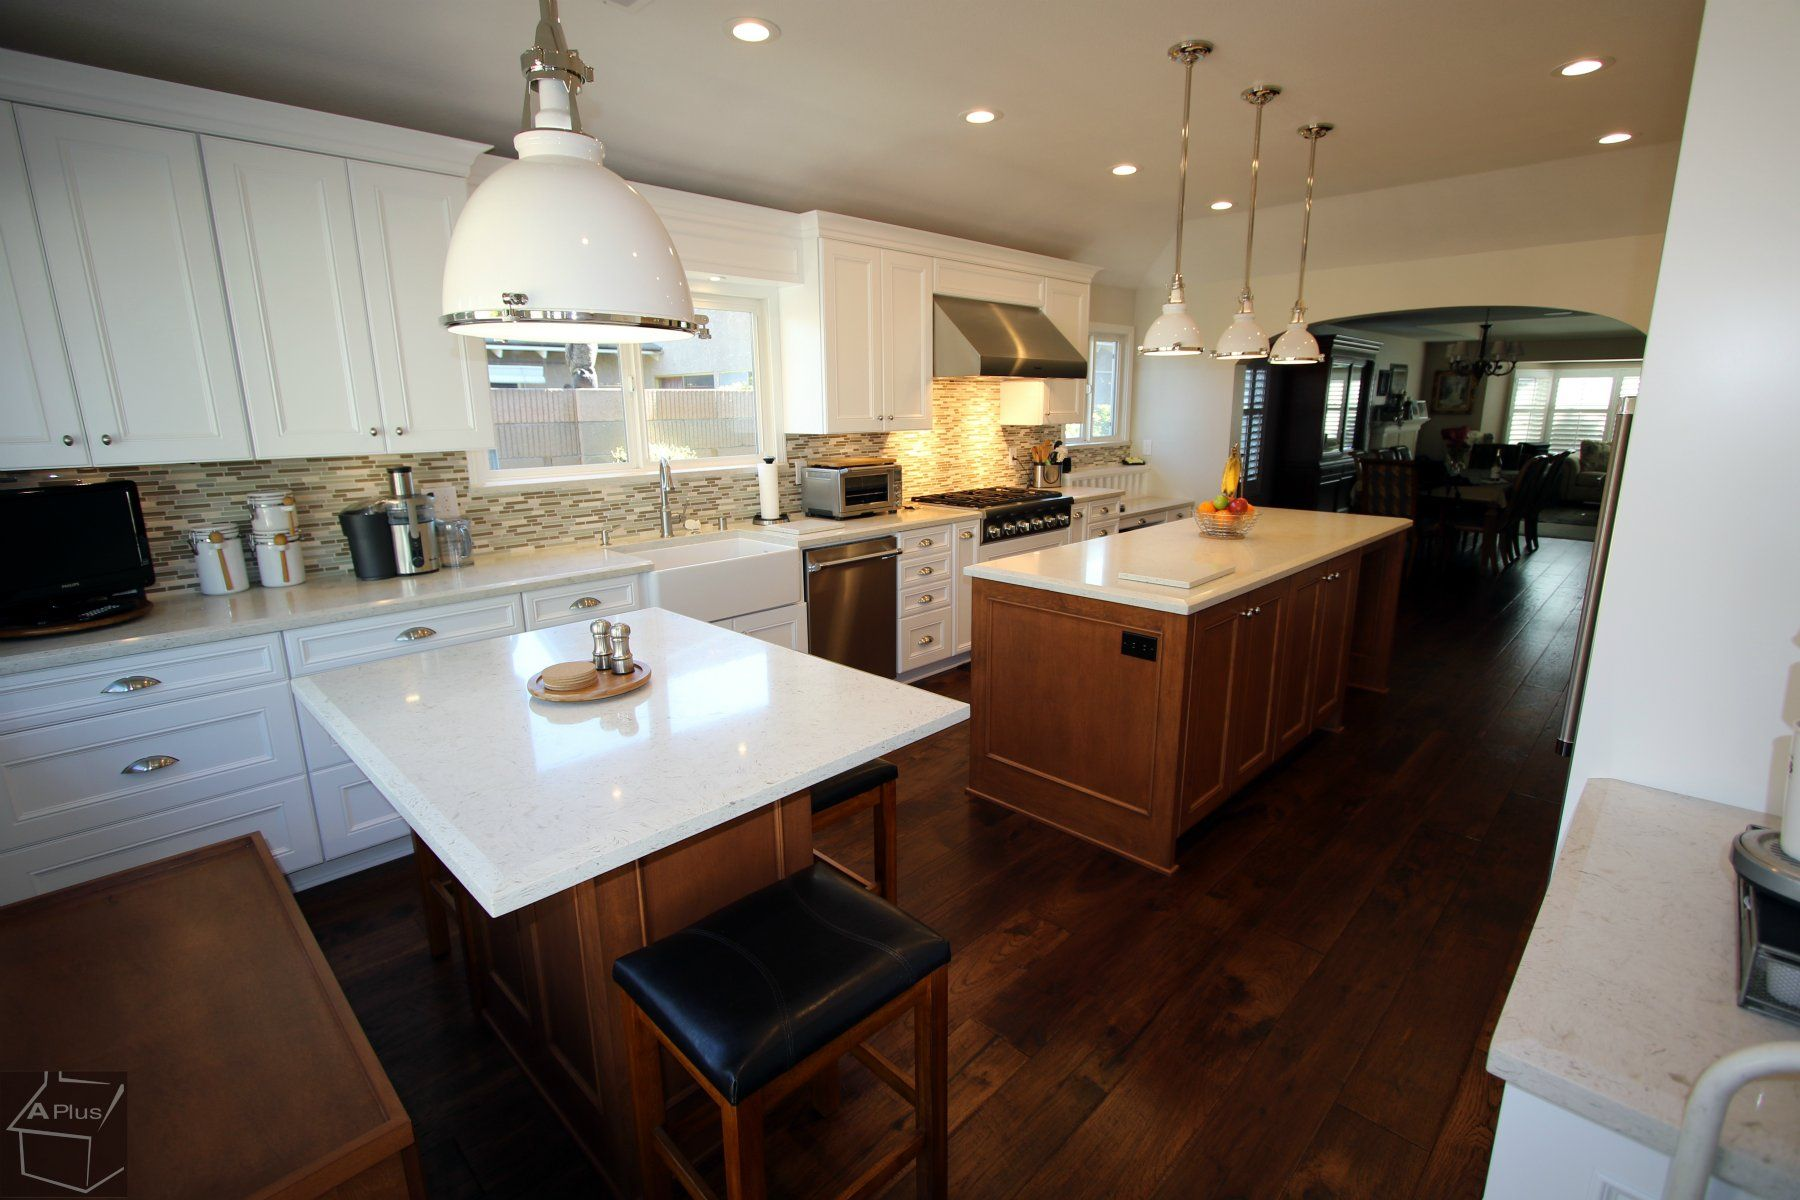 Transitional Style Kitchenremodel With Two Island Kitchen Home